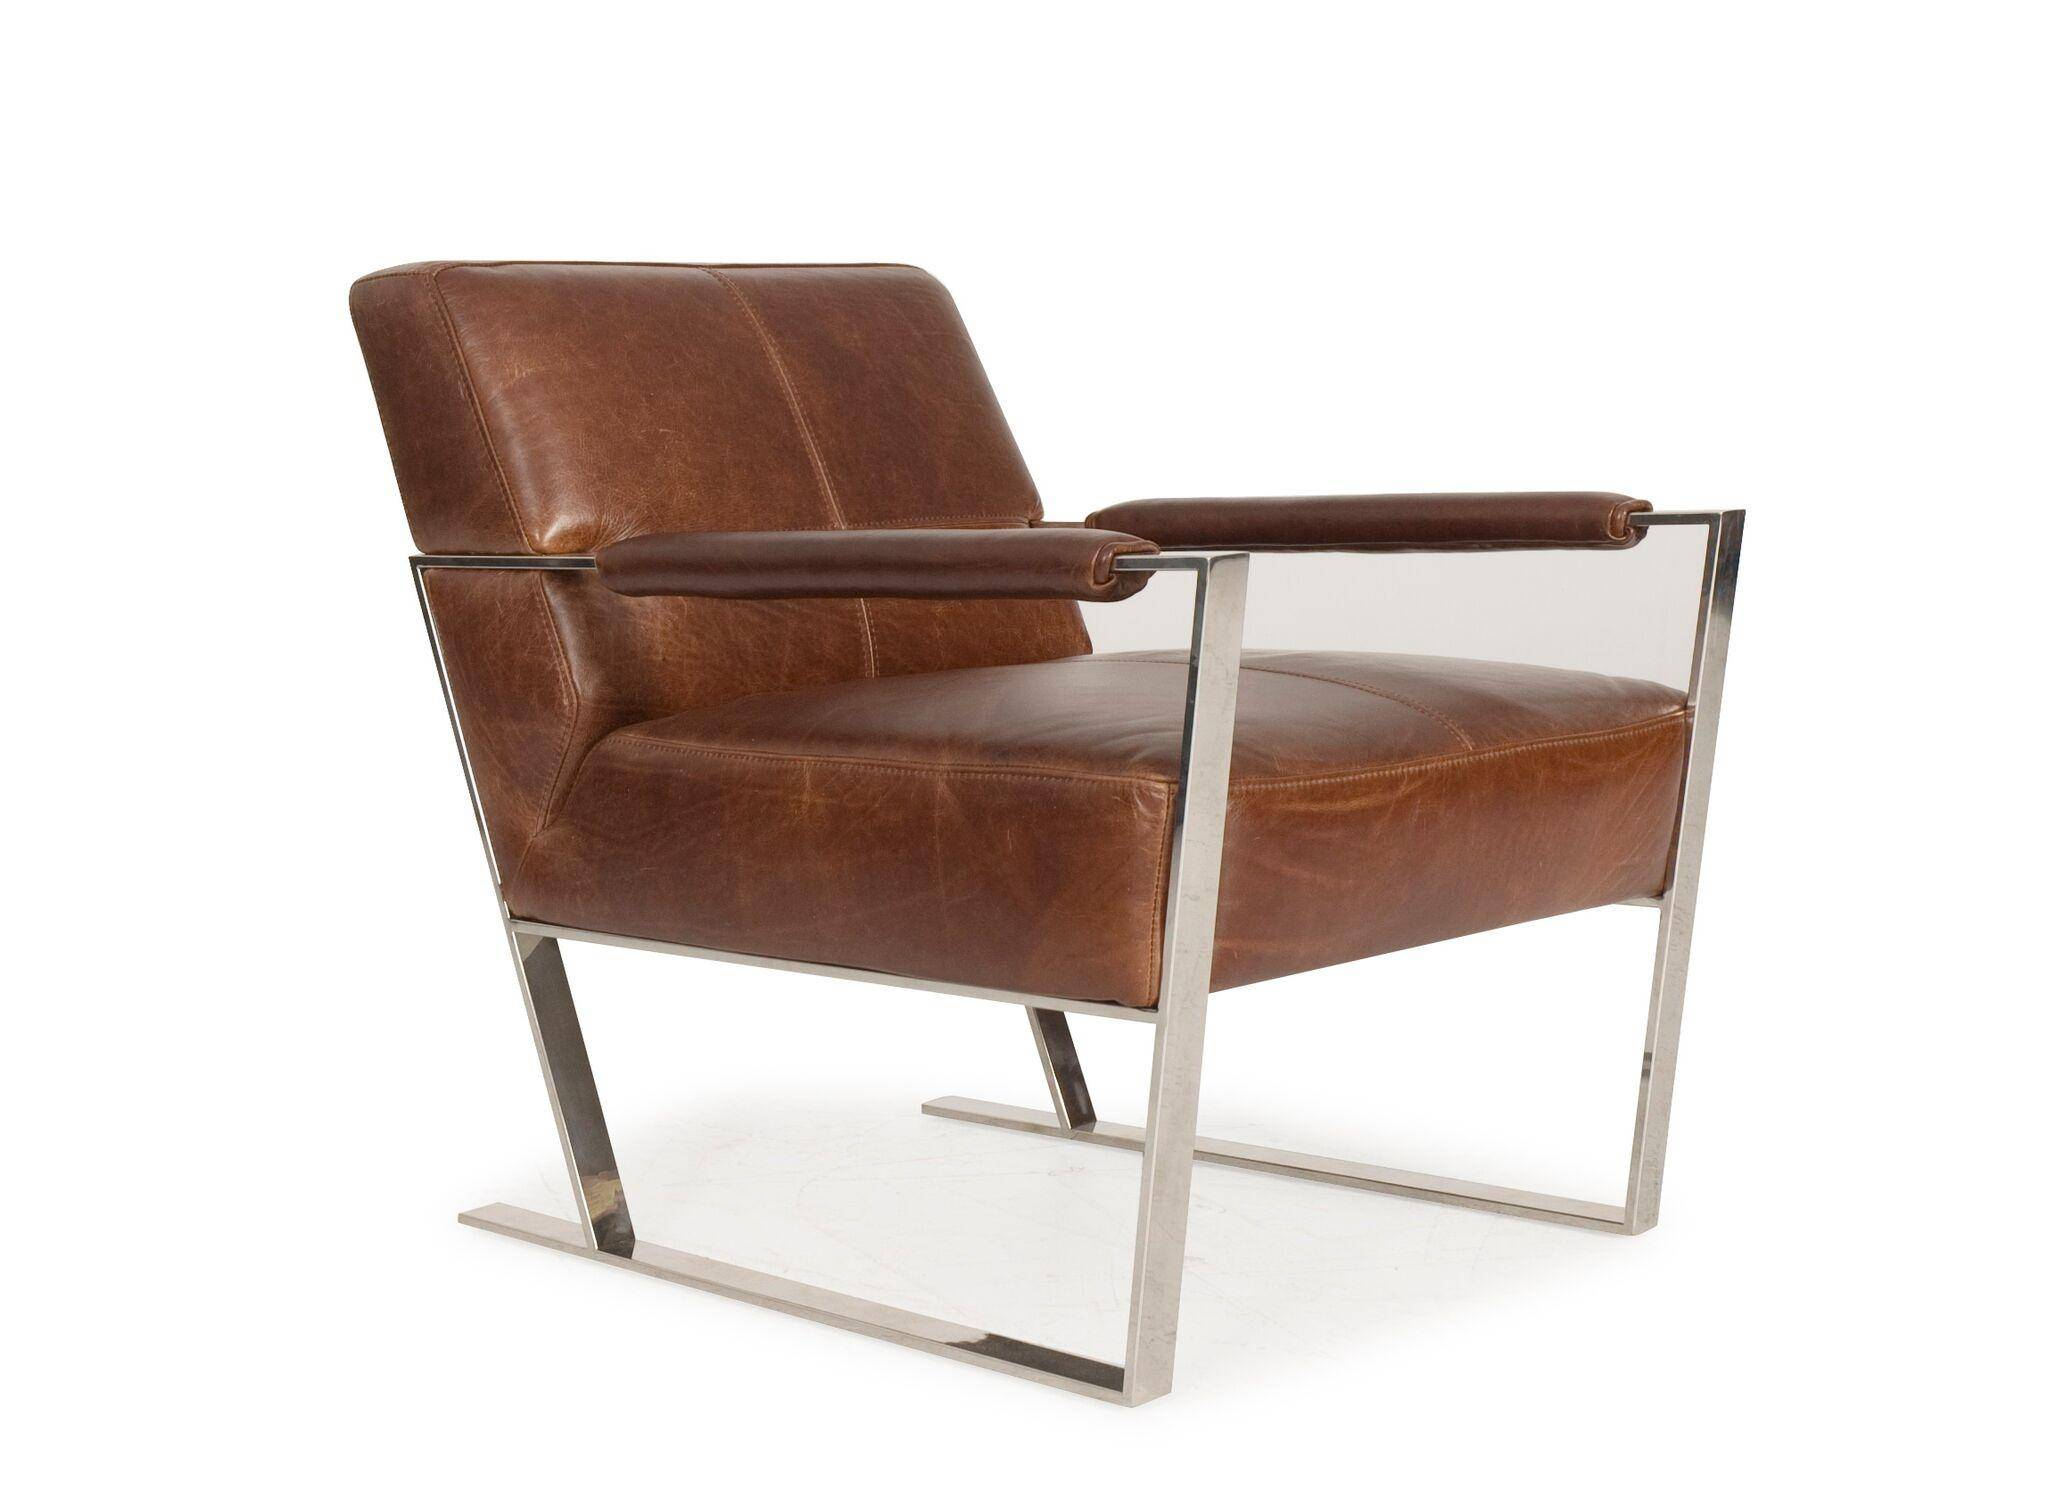 Terrific Moroni Uno 537 Cognac Top Grain Leather Upholstery Ibusinesslaw Wood Chair Design Ideas Ibusinesslaworg